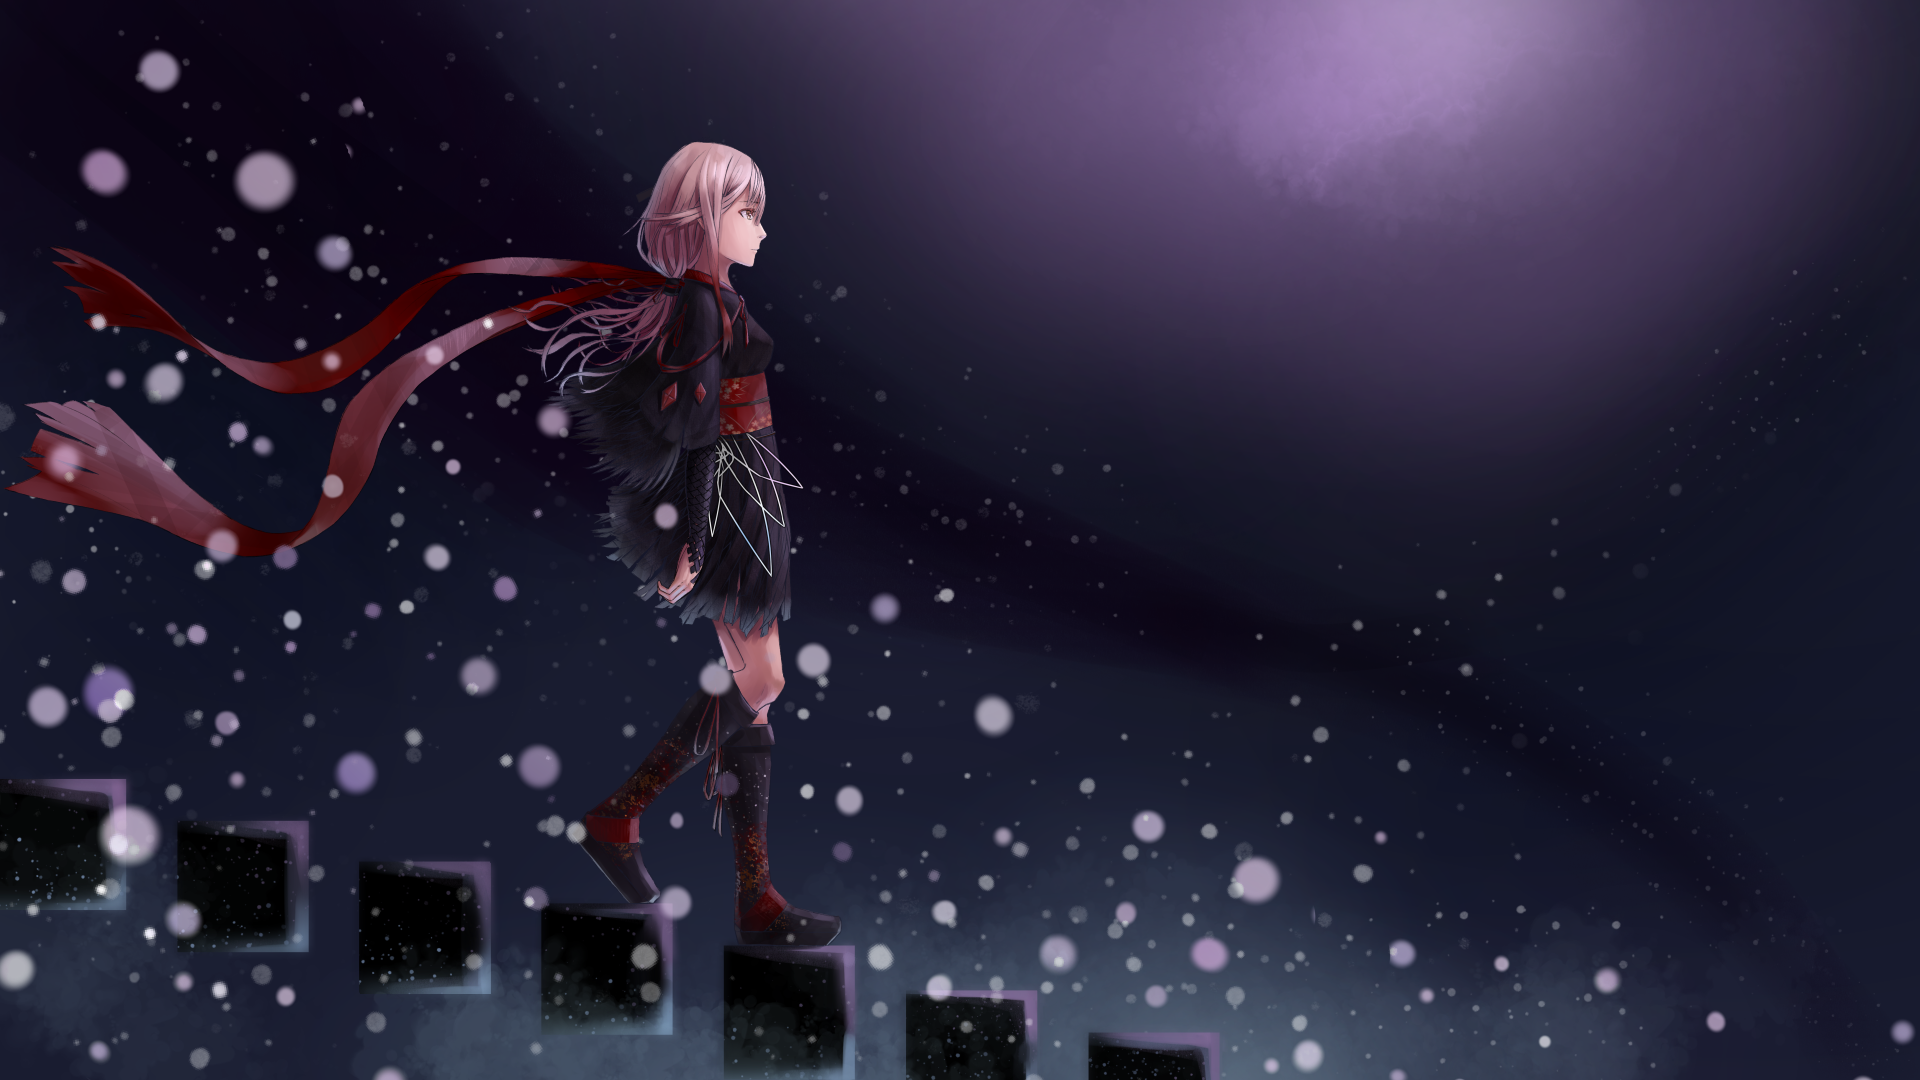 Anime Guilty Crown Inori Yuzuriha Wallpaper Guilty Crown Inori 1920x1080